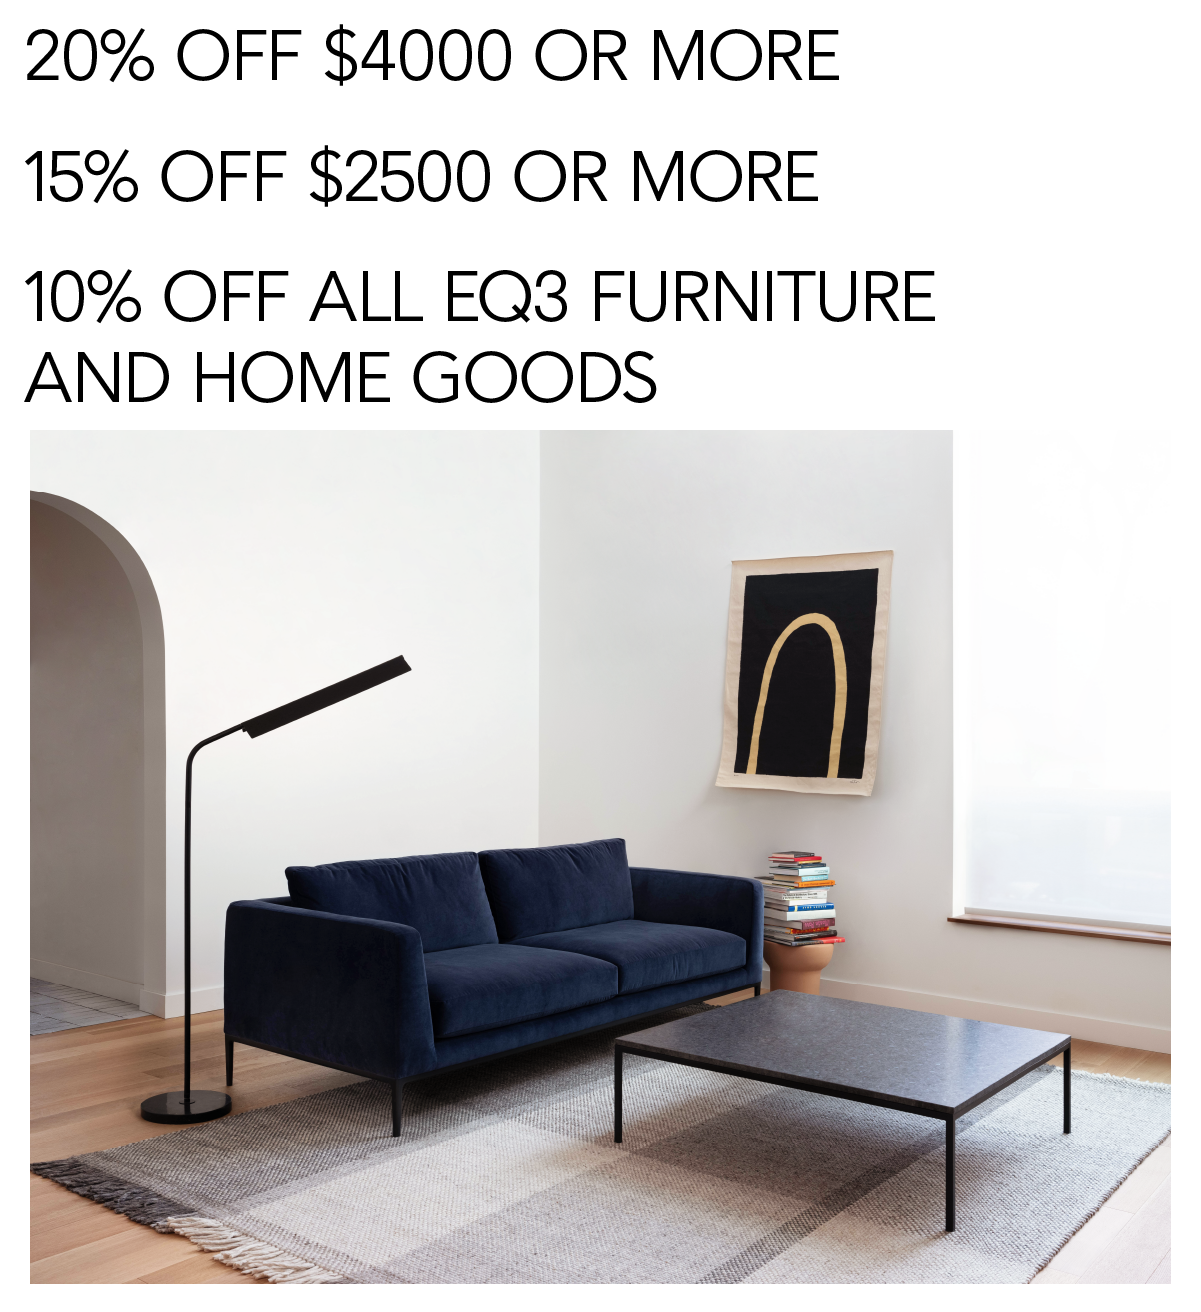 Save up to 20% off $4000 or more this weekend